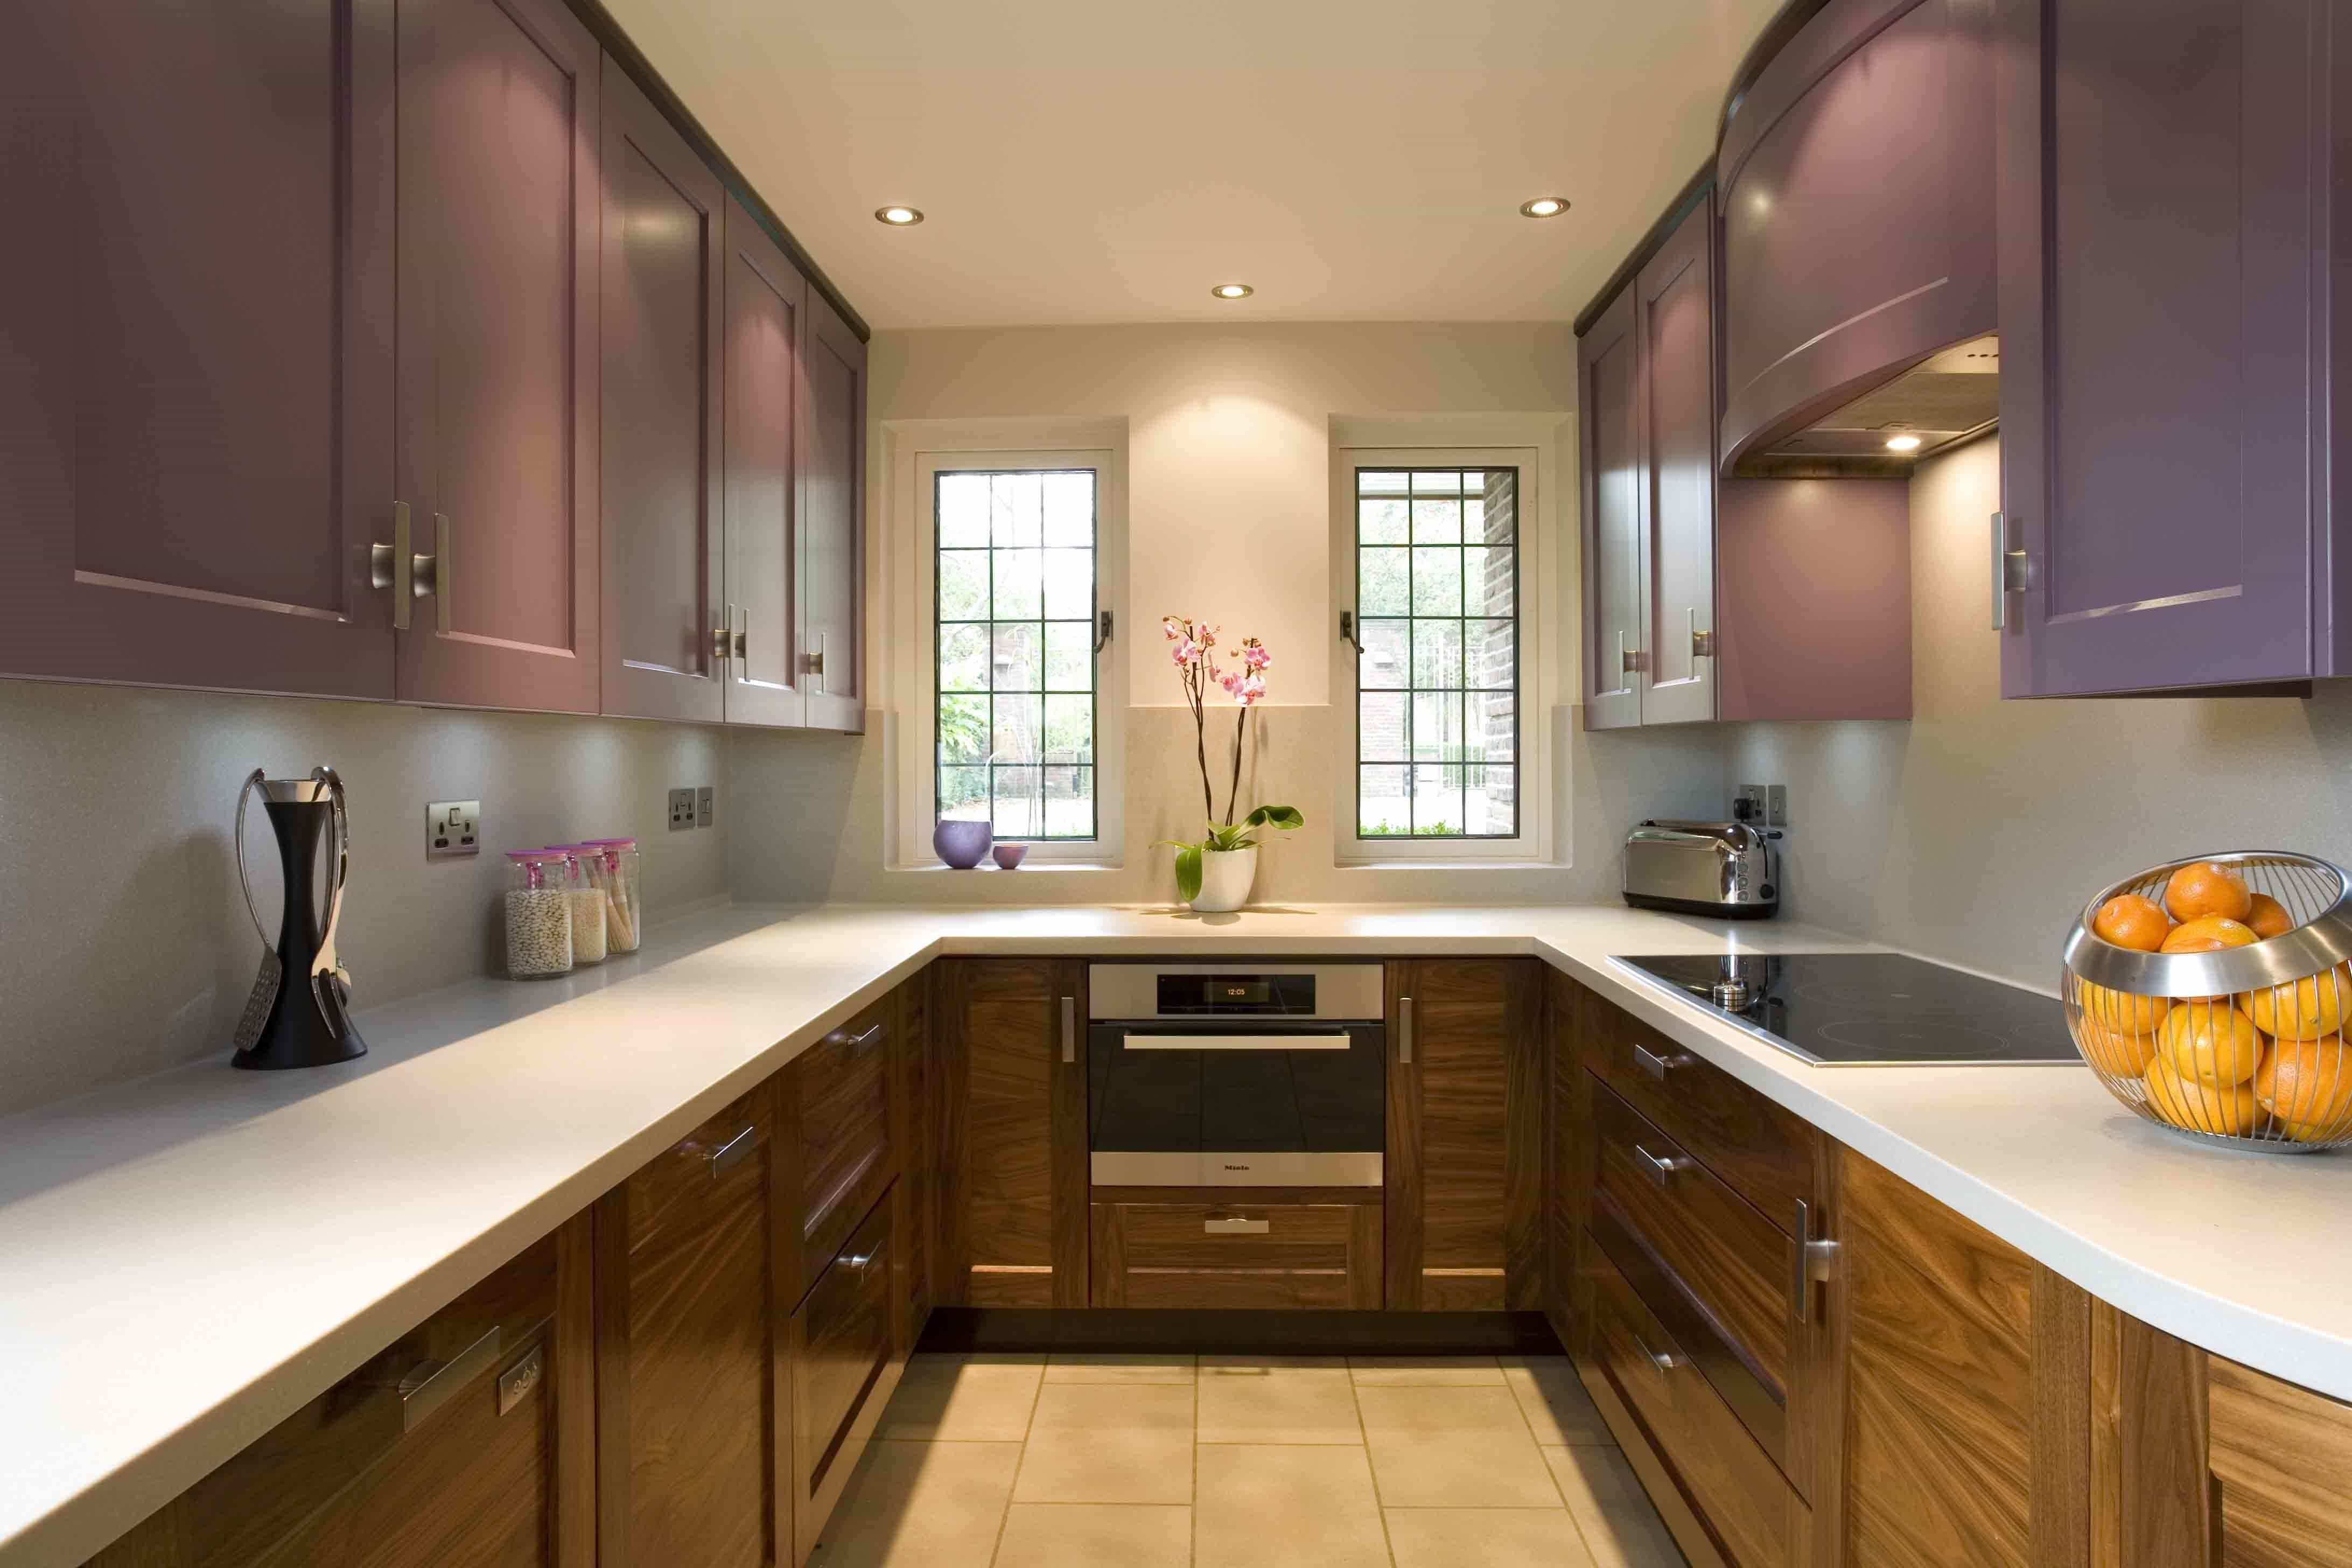 U-shaped kitchen in lilac color in combination with wood